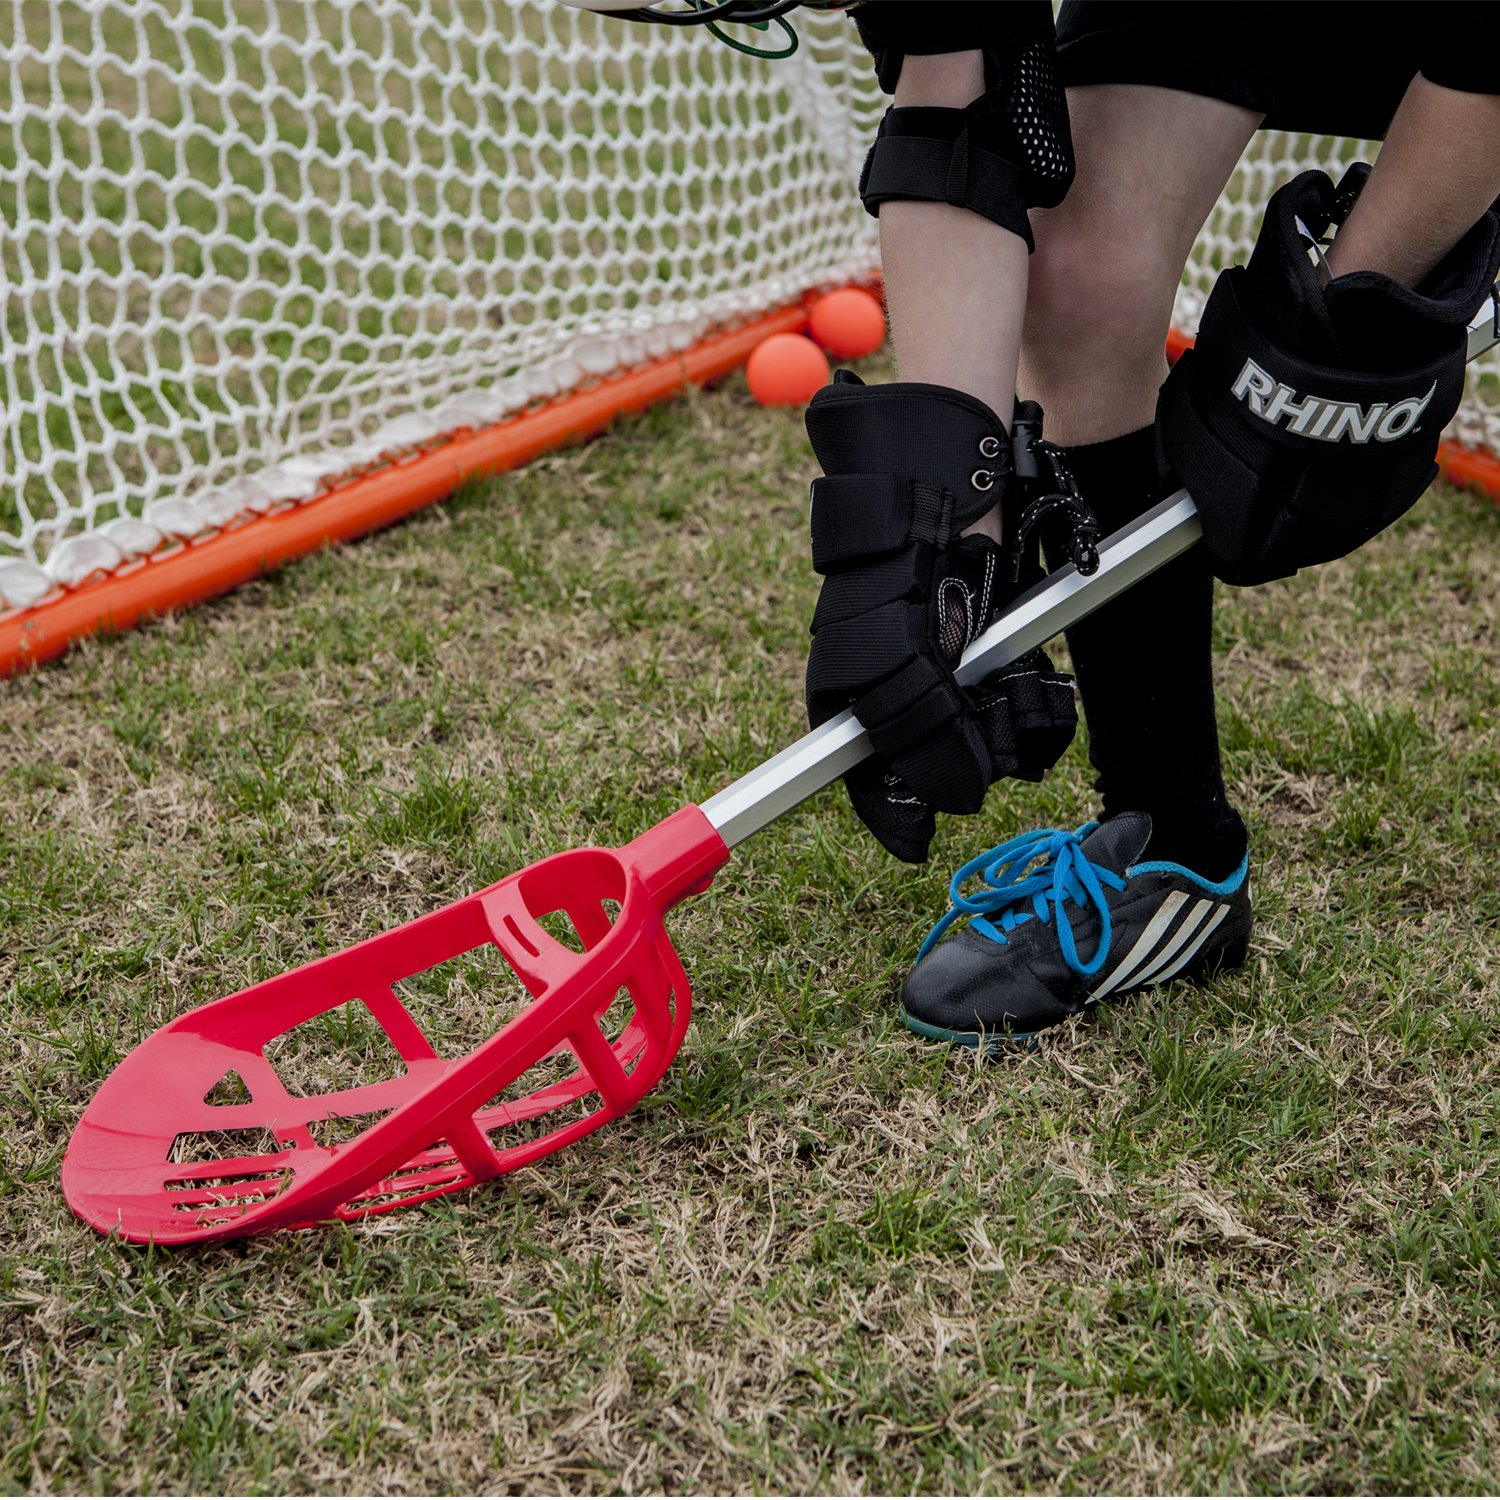 Champion Sports Soft Lacrosse Set: Training Equipment for Boys, Girls, Kids, Youth and Amateur Athletes - 12 Aluminum Sticks and 6 Vinyl Balls for Indoor Outdoor Use by Champion Sports (Image #8)